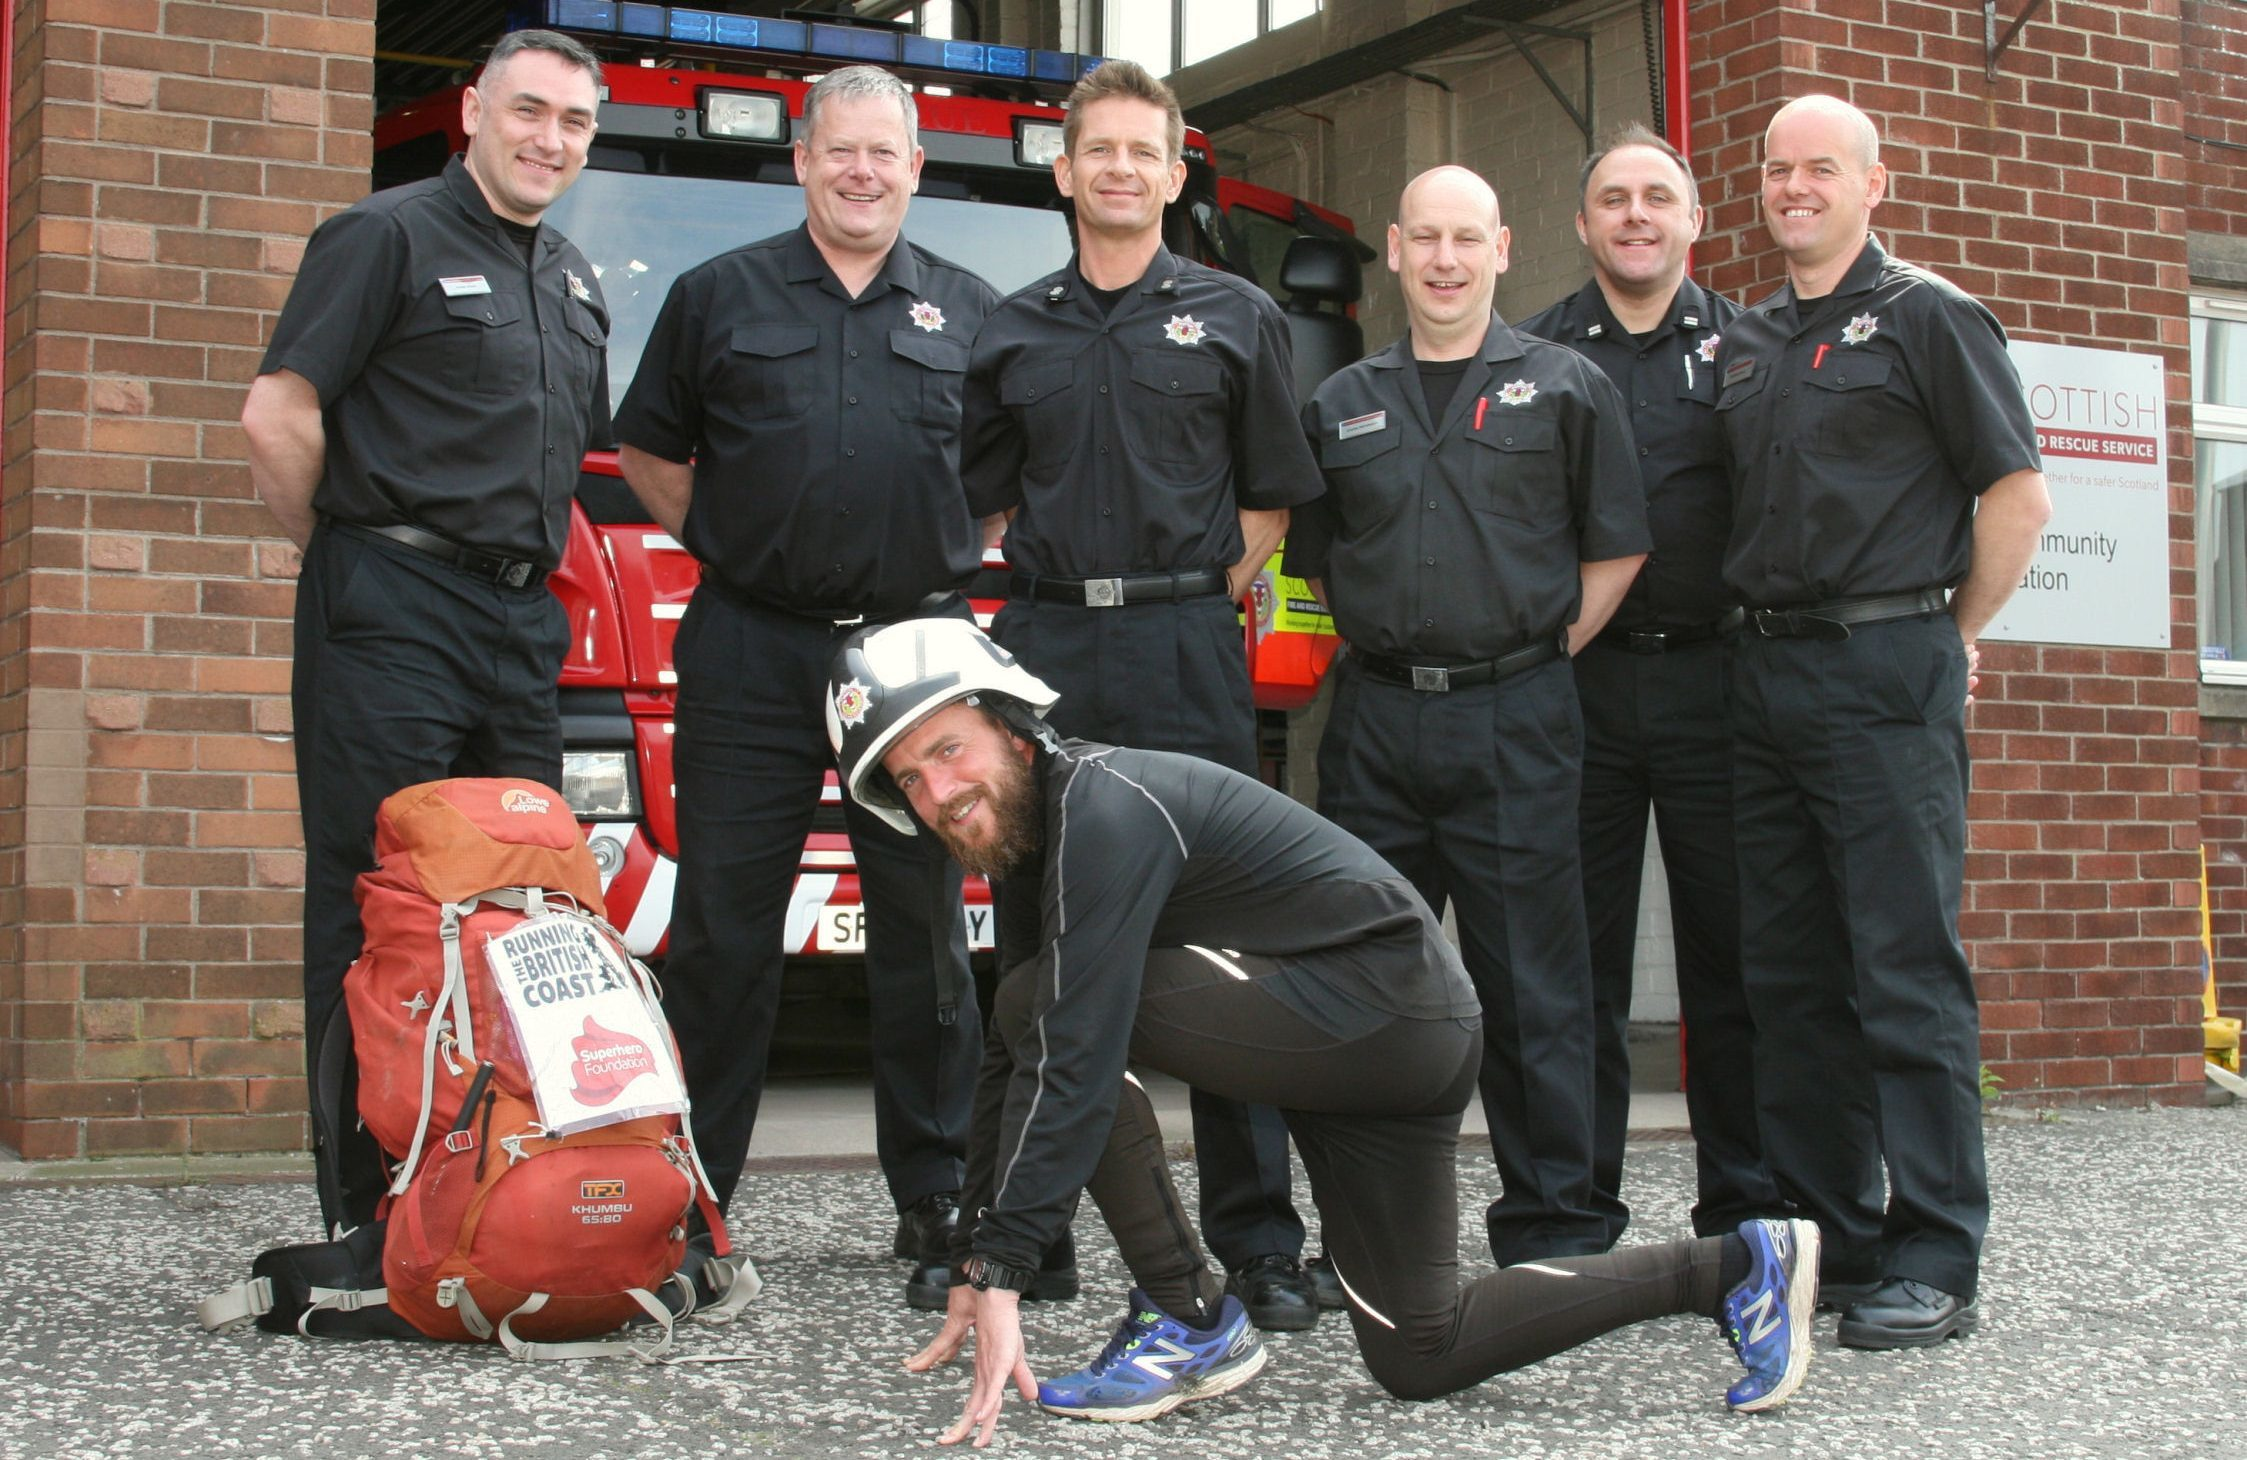 Wayne is pictured wearing a helmet with the firemen of Arbroath, from left — Mark Ross, Wayne Russell, Davie Duncan, Jim Stark, Mike Cossie, Gav Paterson, and Gav Coull.